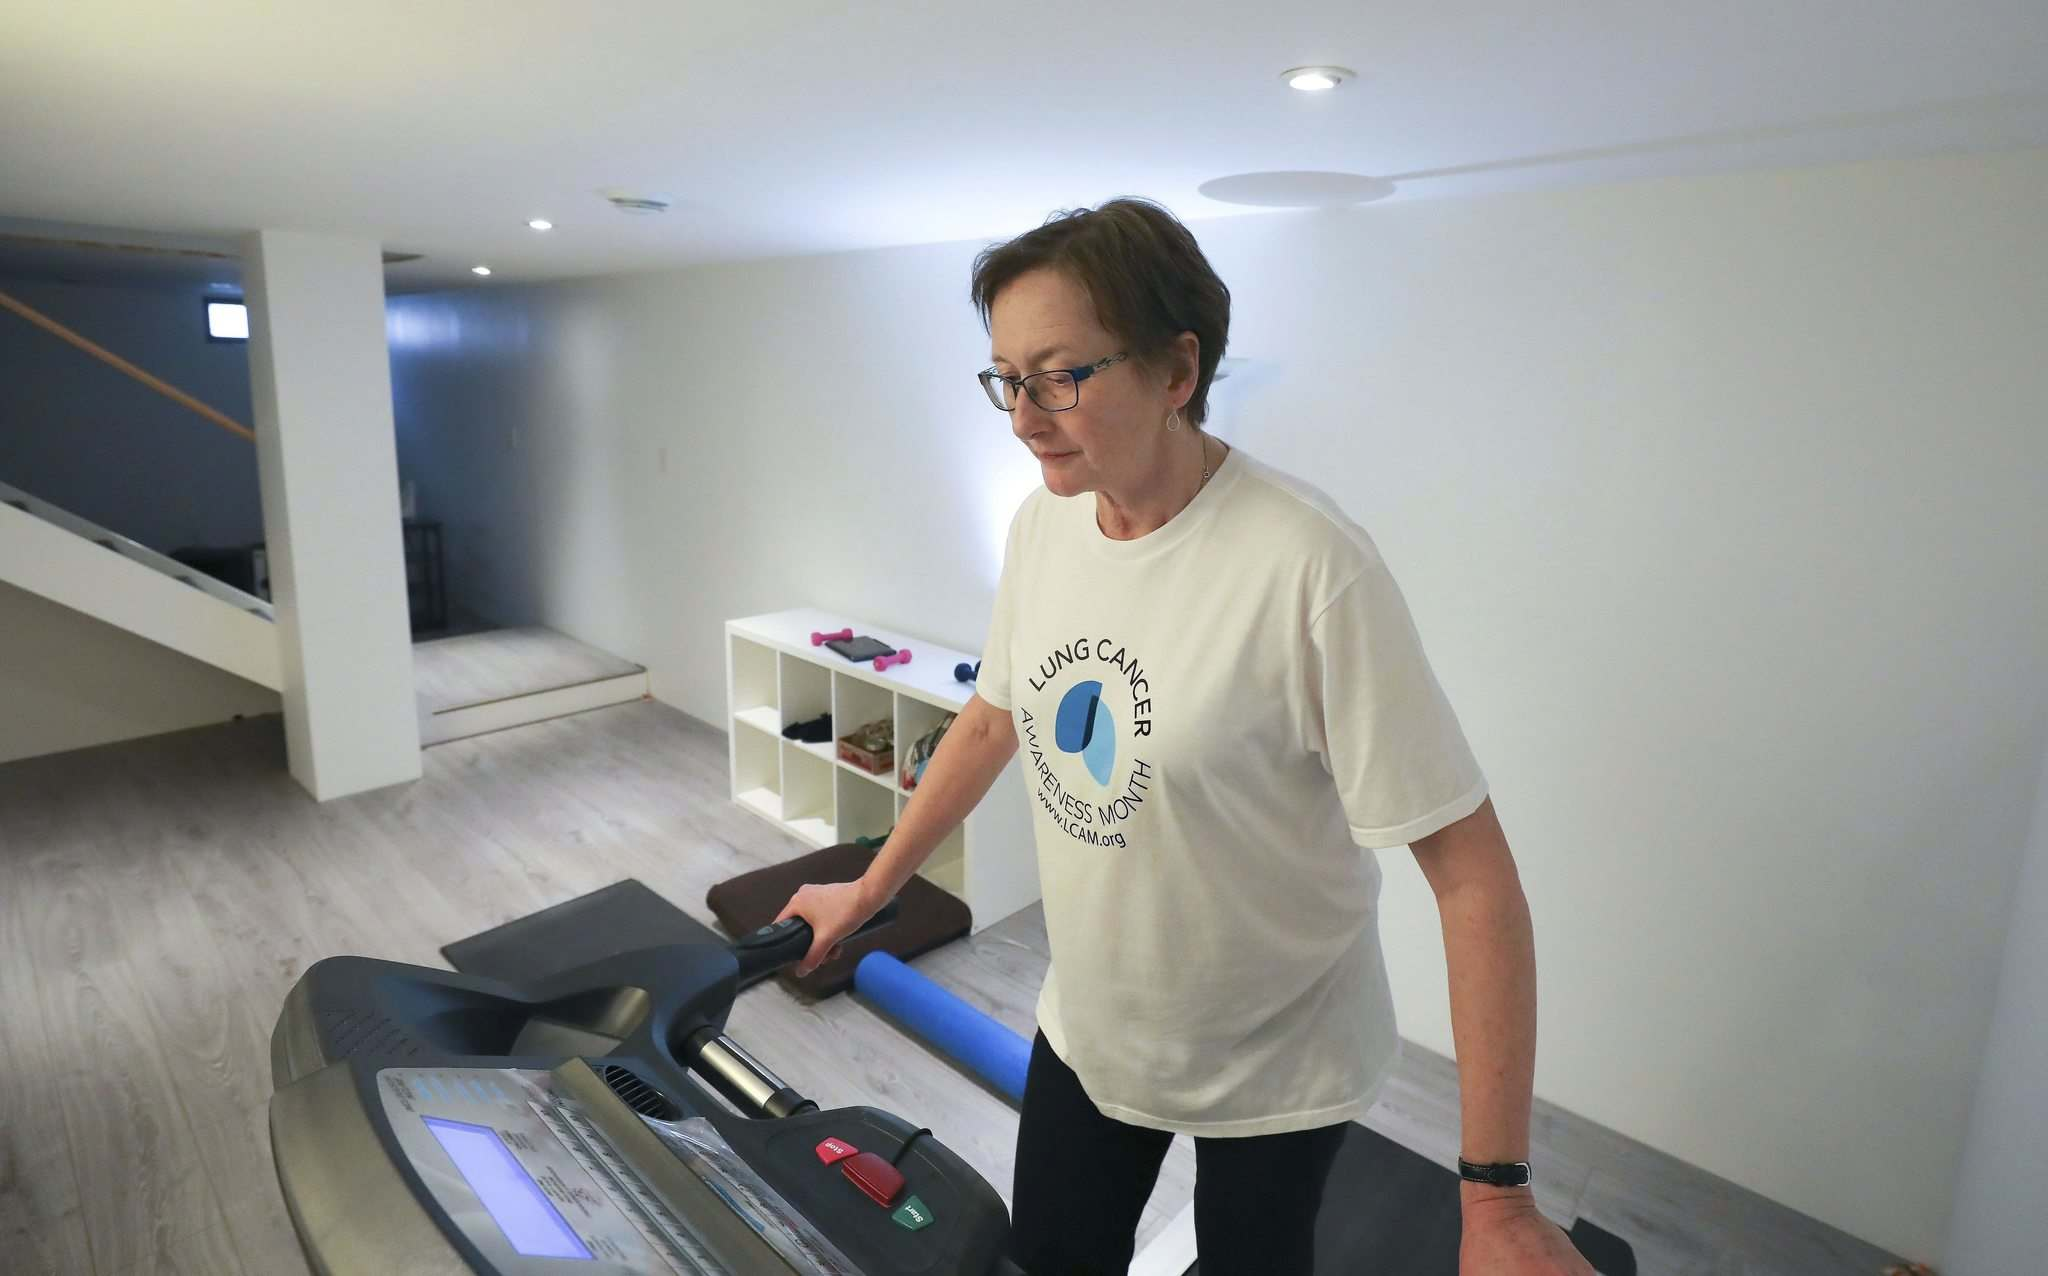 RUTH BONNEVILLE / WINNIPEG FREE PRESS</p><p>Before her diagnosis five years ago, Haiart was an avid runner and most importantly, never smoked.</p></p></p></p>